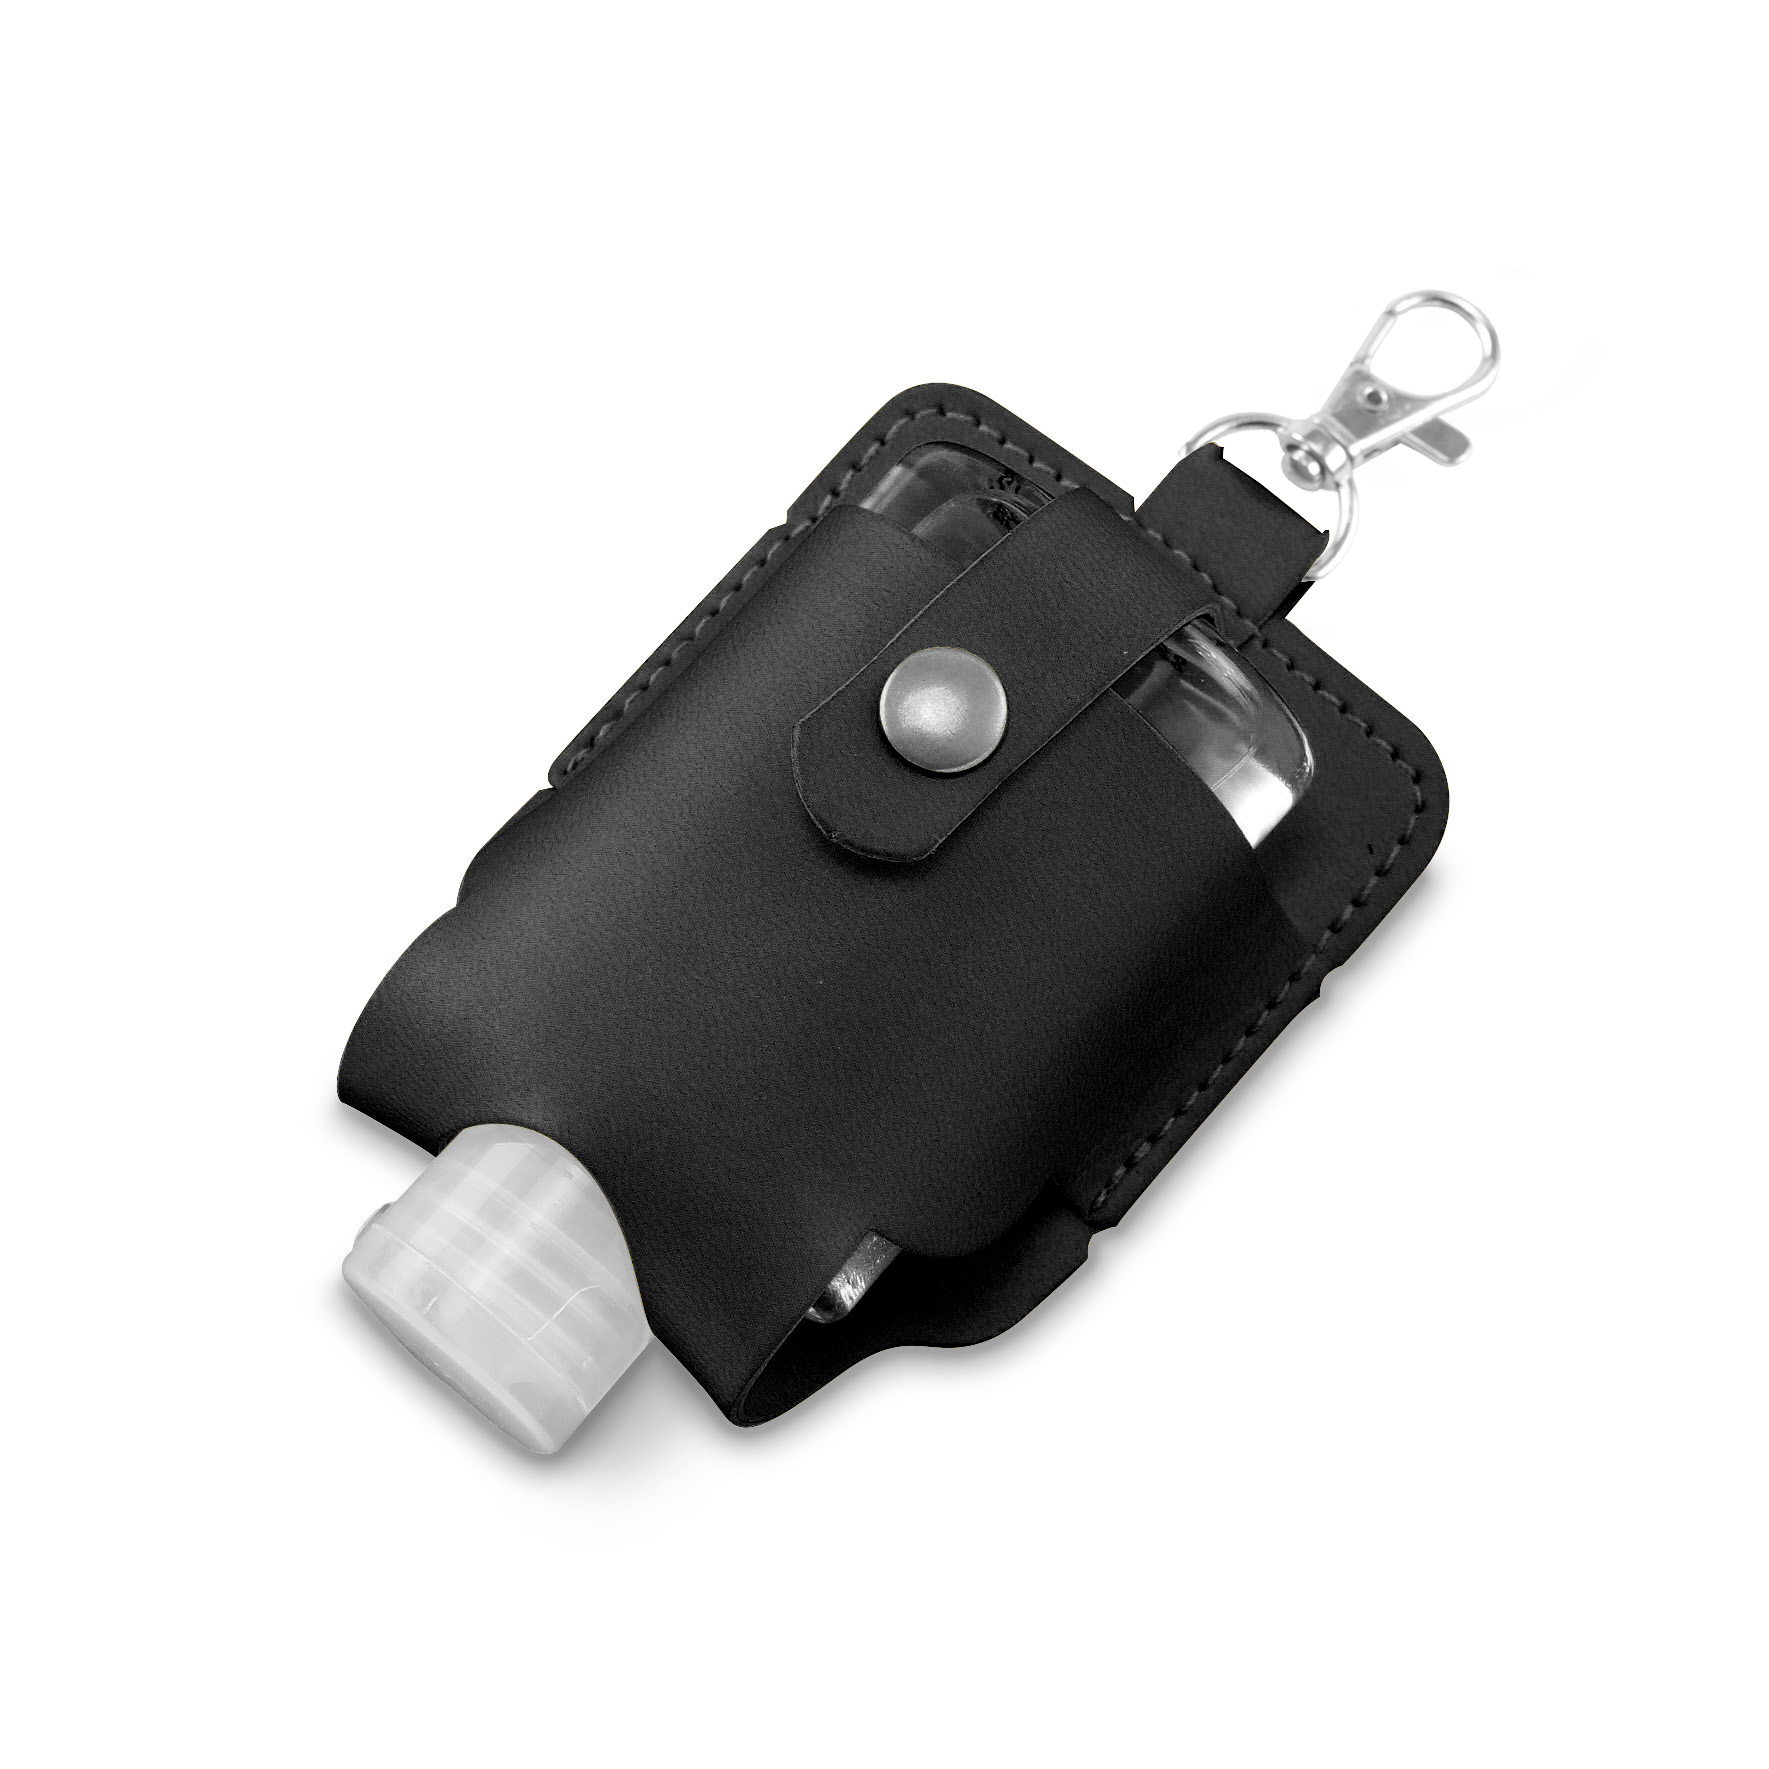 Black Soft Touch Hand Sanitiser Pouch with Sanitiser